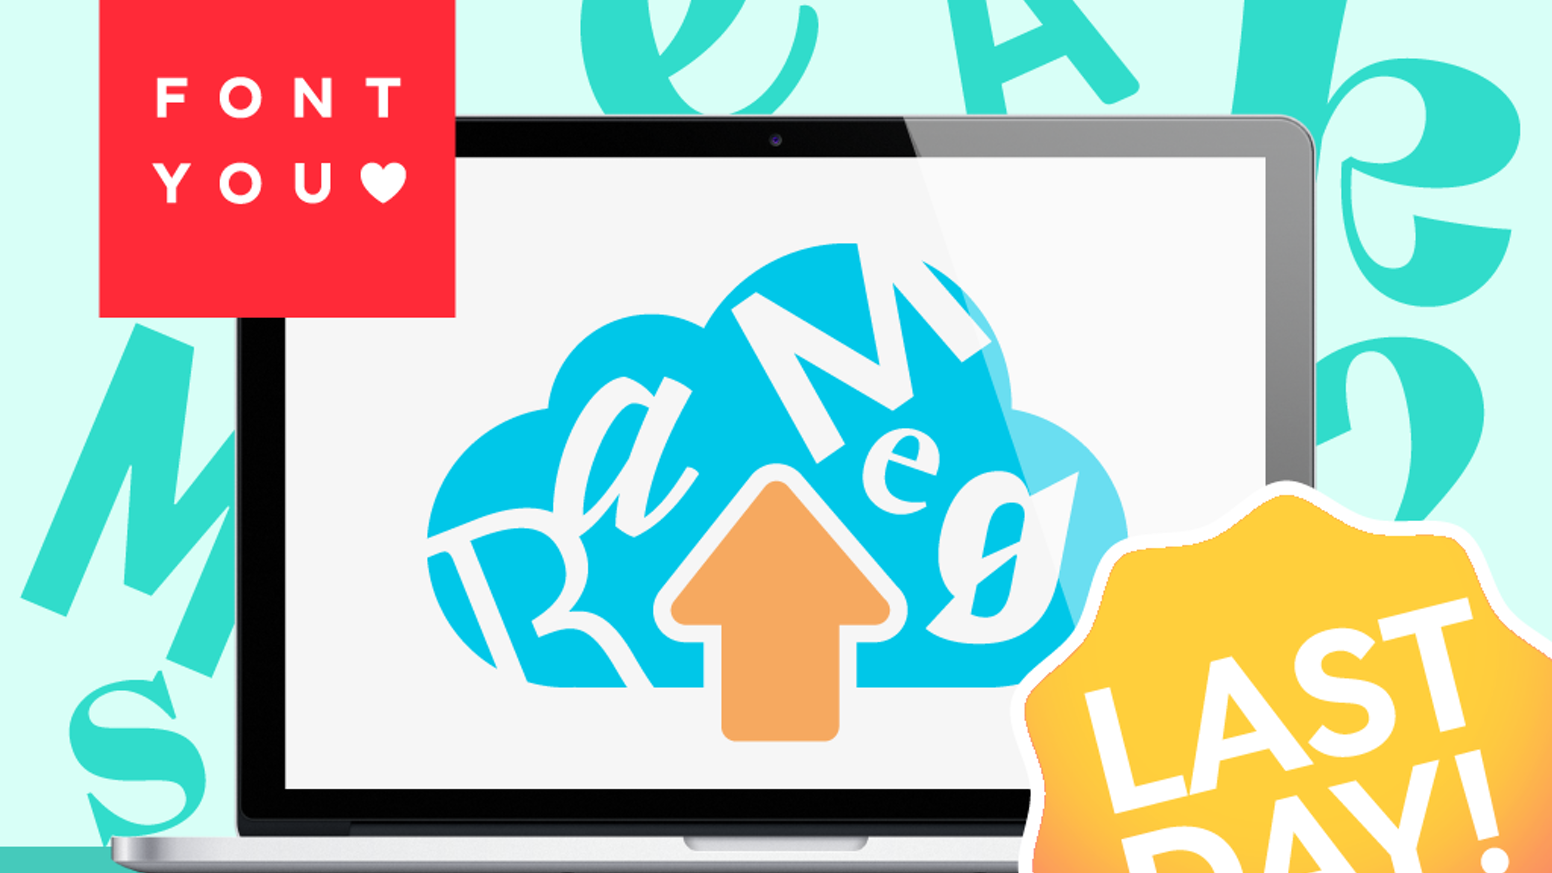 Fontyou is the first All-in-one font solution that allows you to browse, buy and manage your favorite fonts anytime and anywhere.